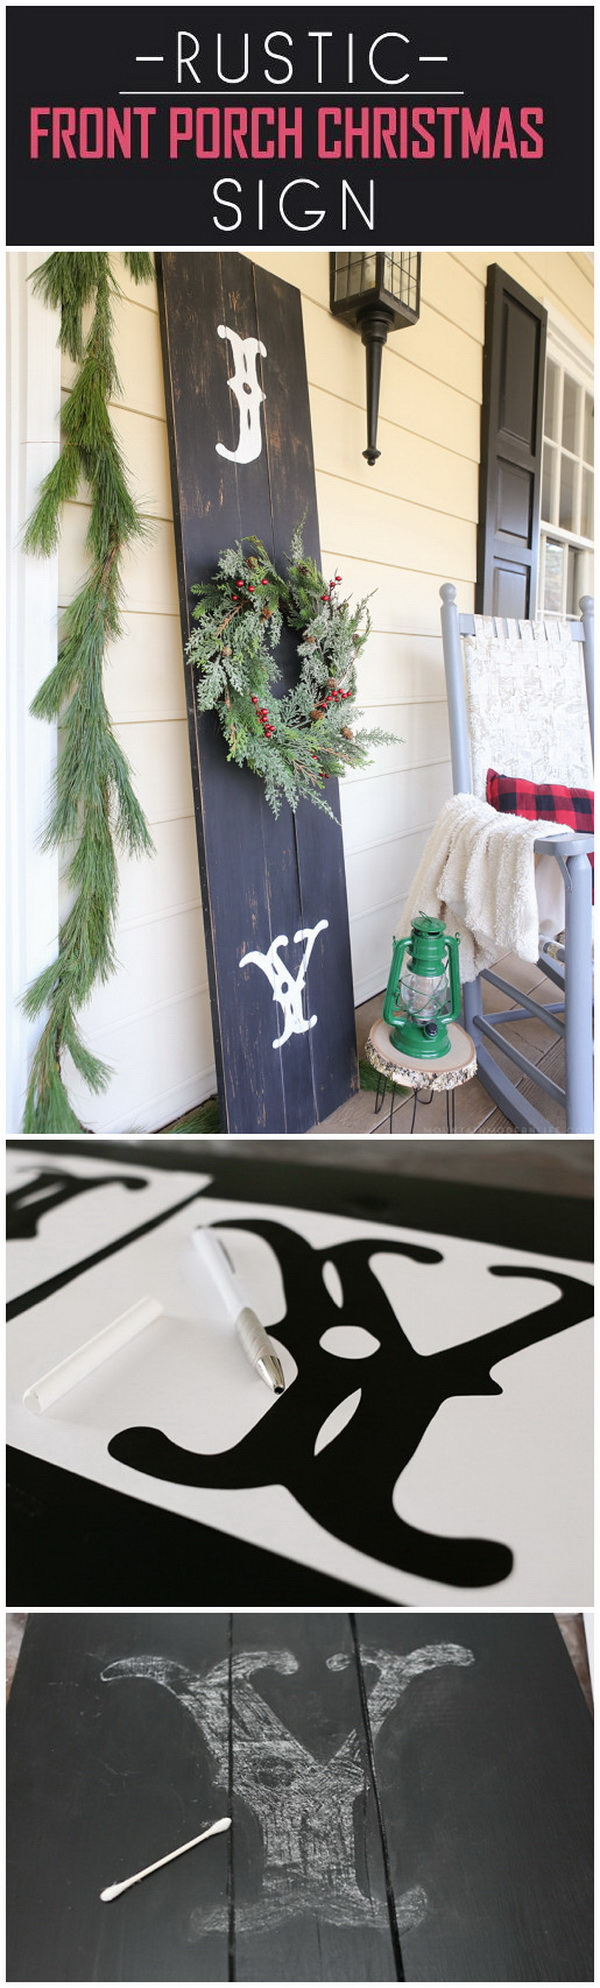 Rustic Front Porch Christmas Sign. This rustic Christmas sign is really an additional holiday decor item to your front porch!